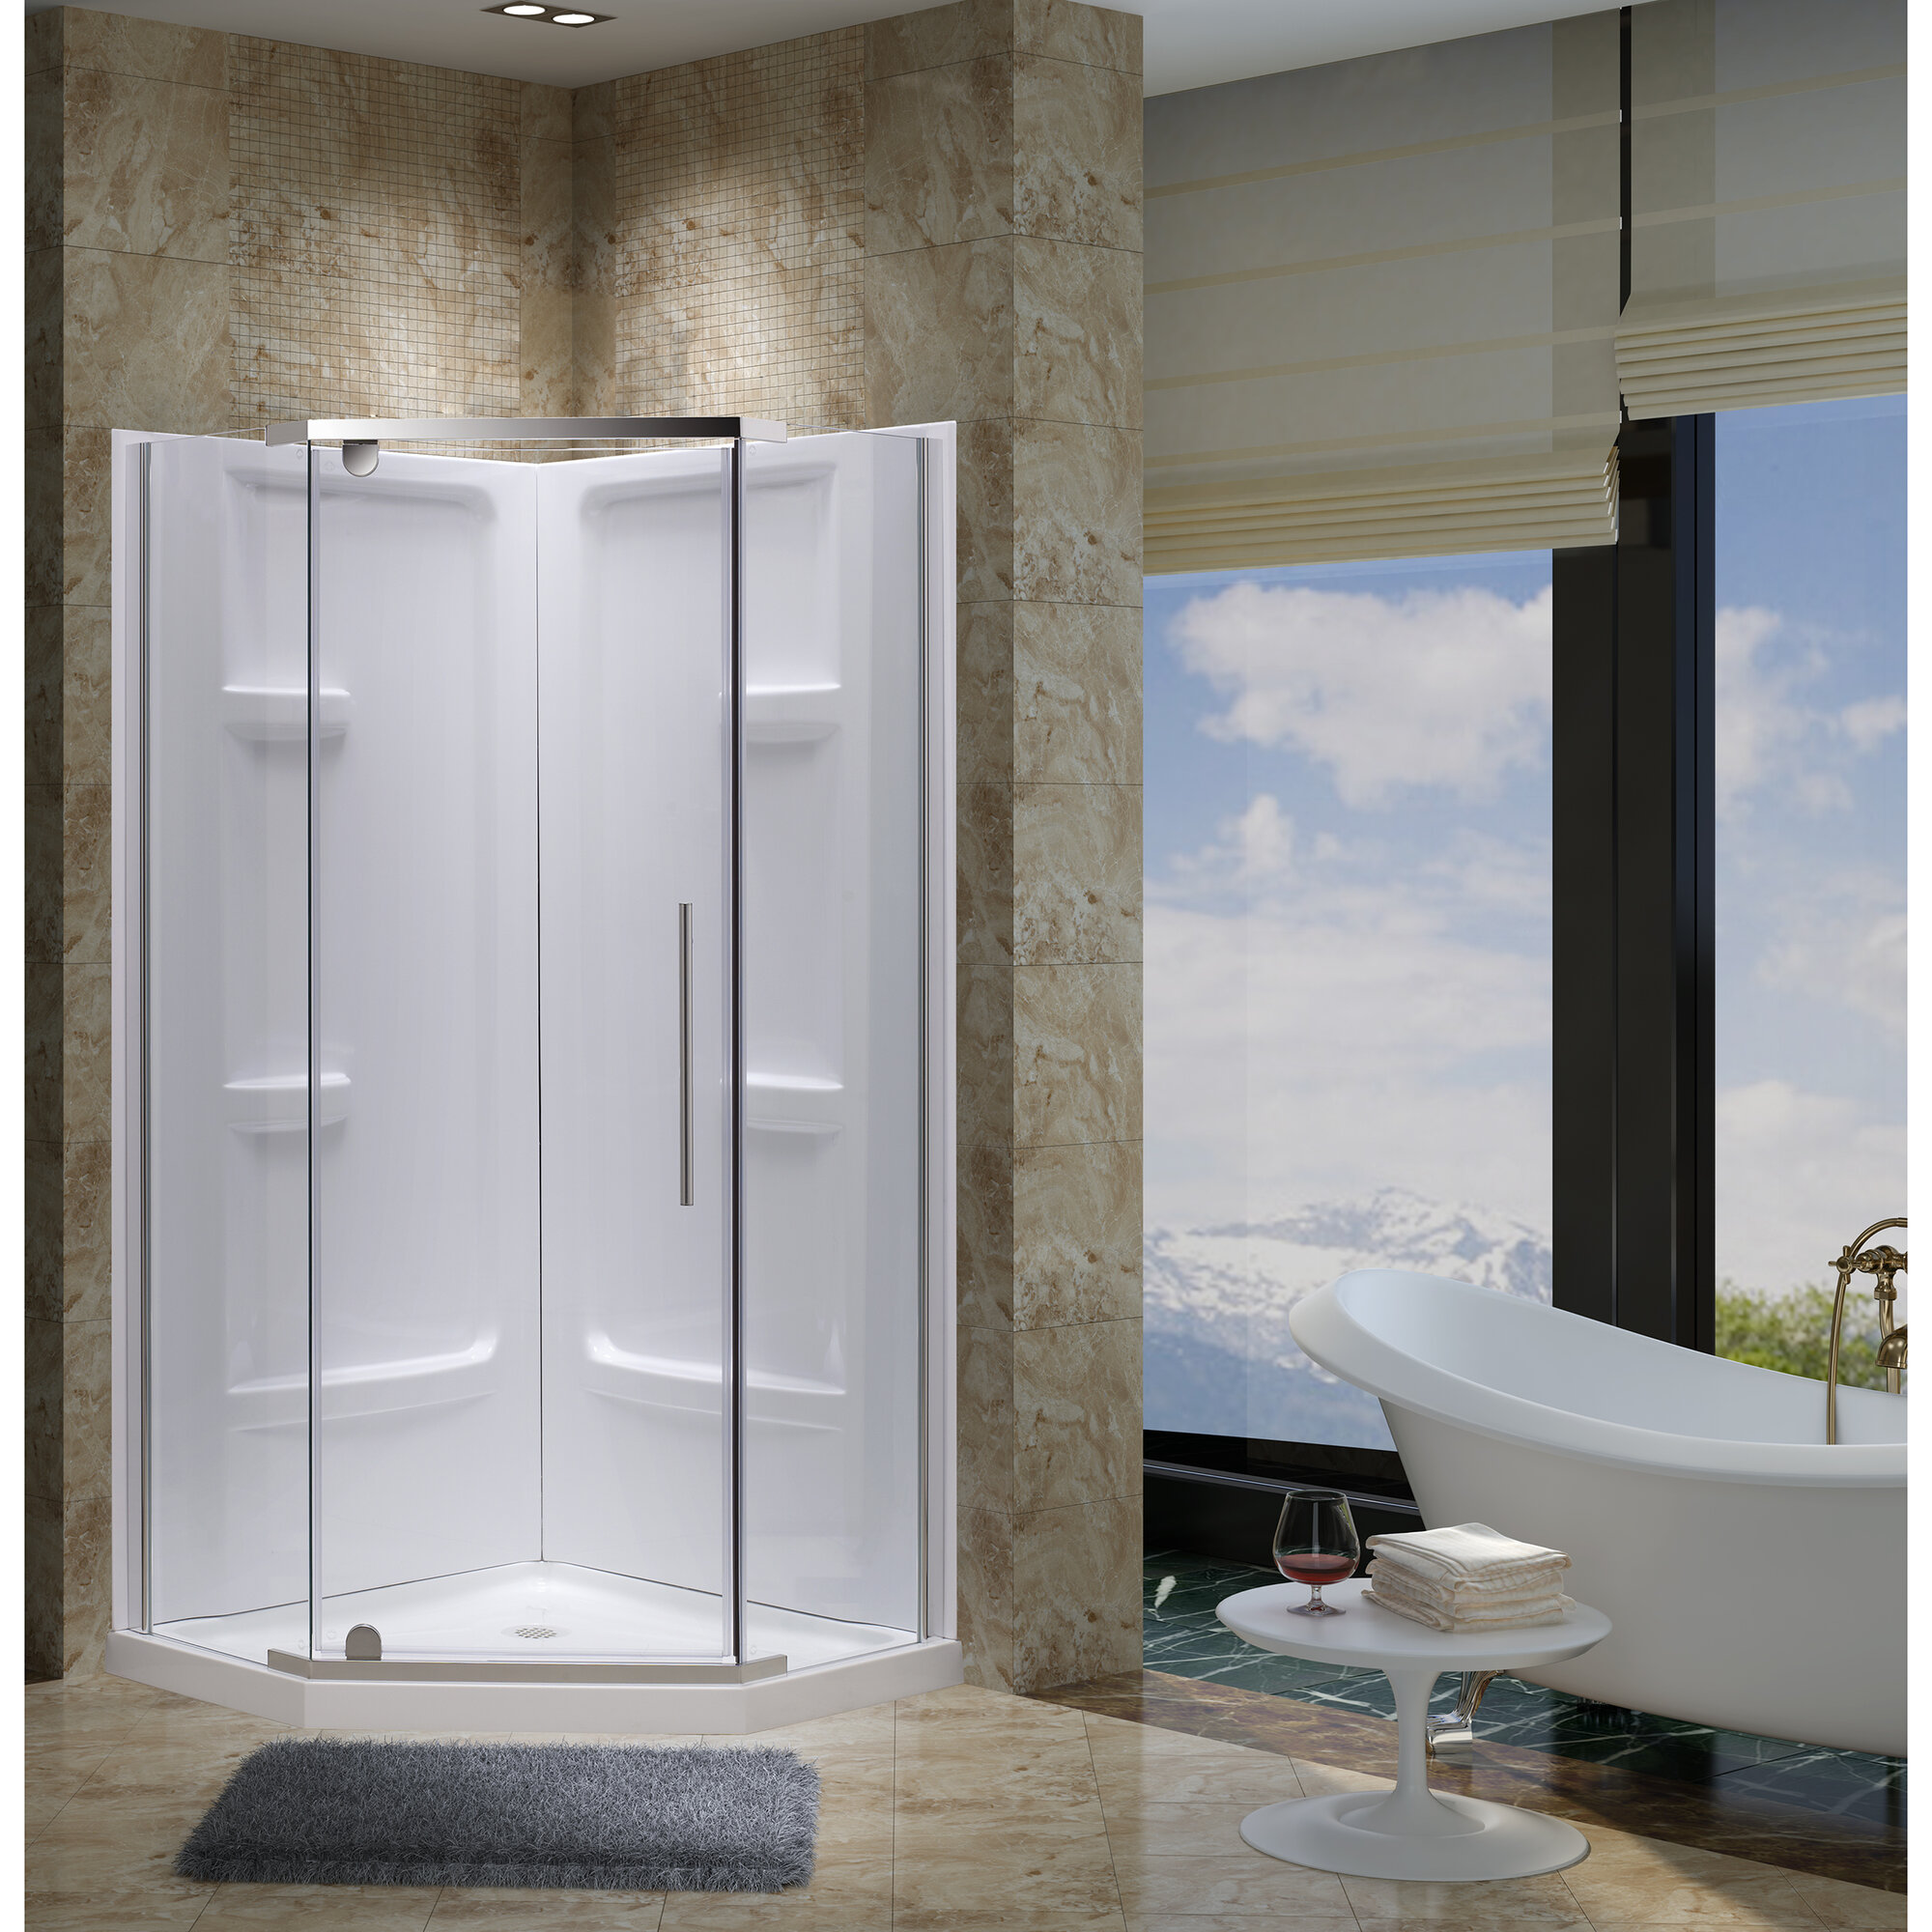 Details About Jade Bath Aspen 38 X 73 Neo Angle Pivot Shower Enclosure With Base Included